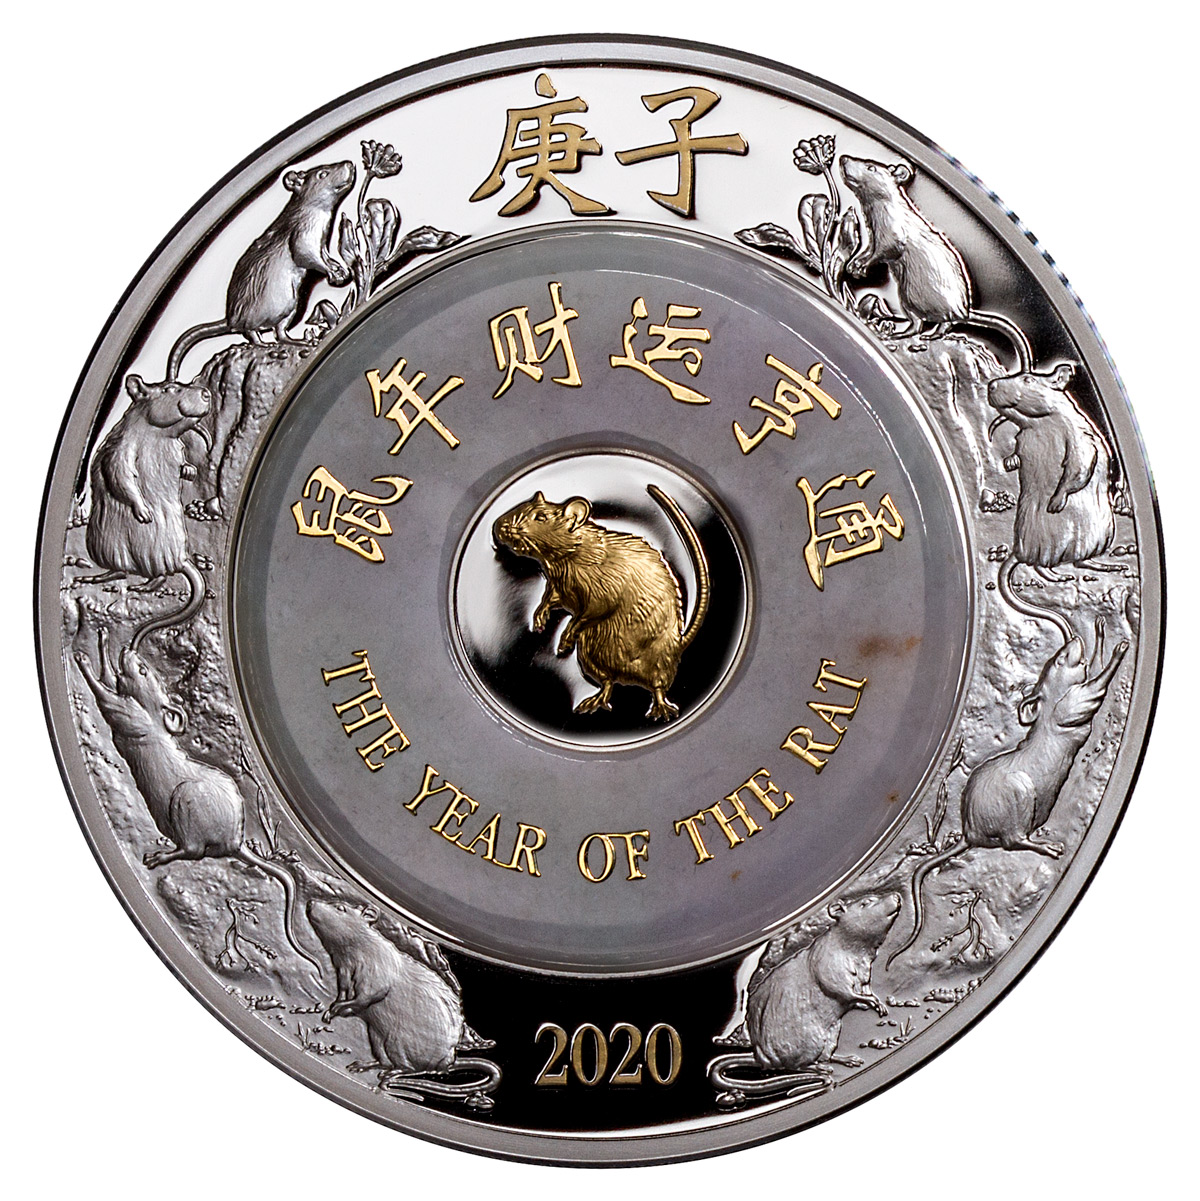 2020 Laos Year of the Rat 2 oz Silver Lunar Gilt Proof with Jade 2,000 Coin GEM Proof Original Mint Box with COA